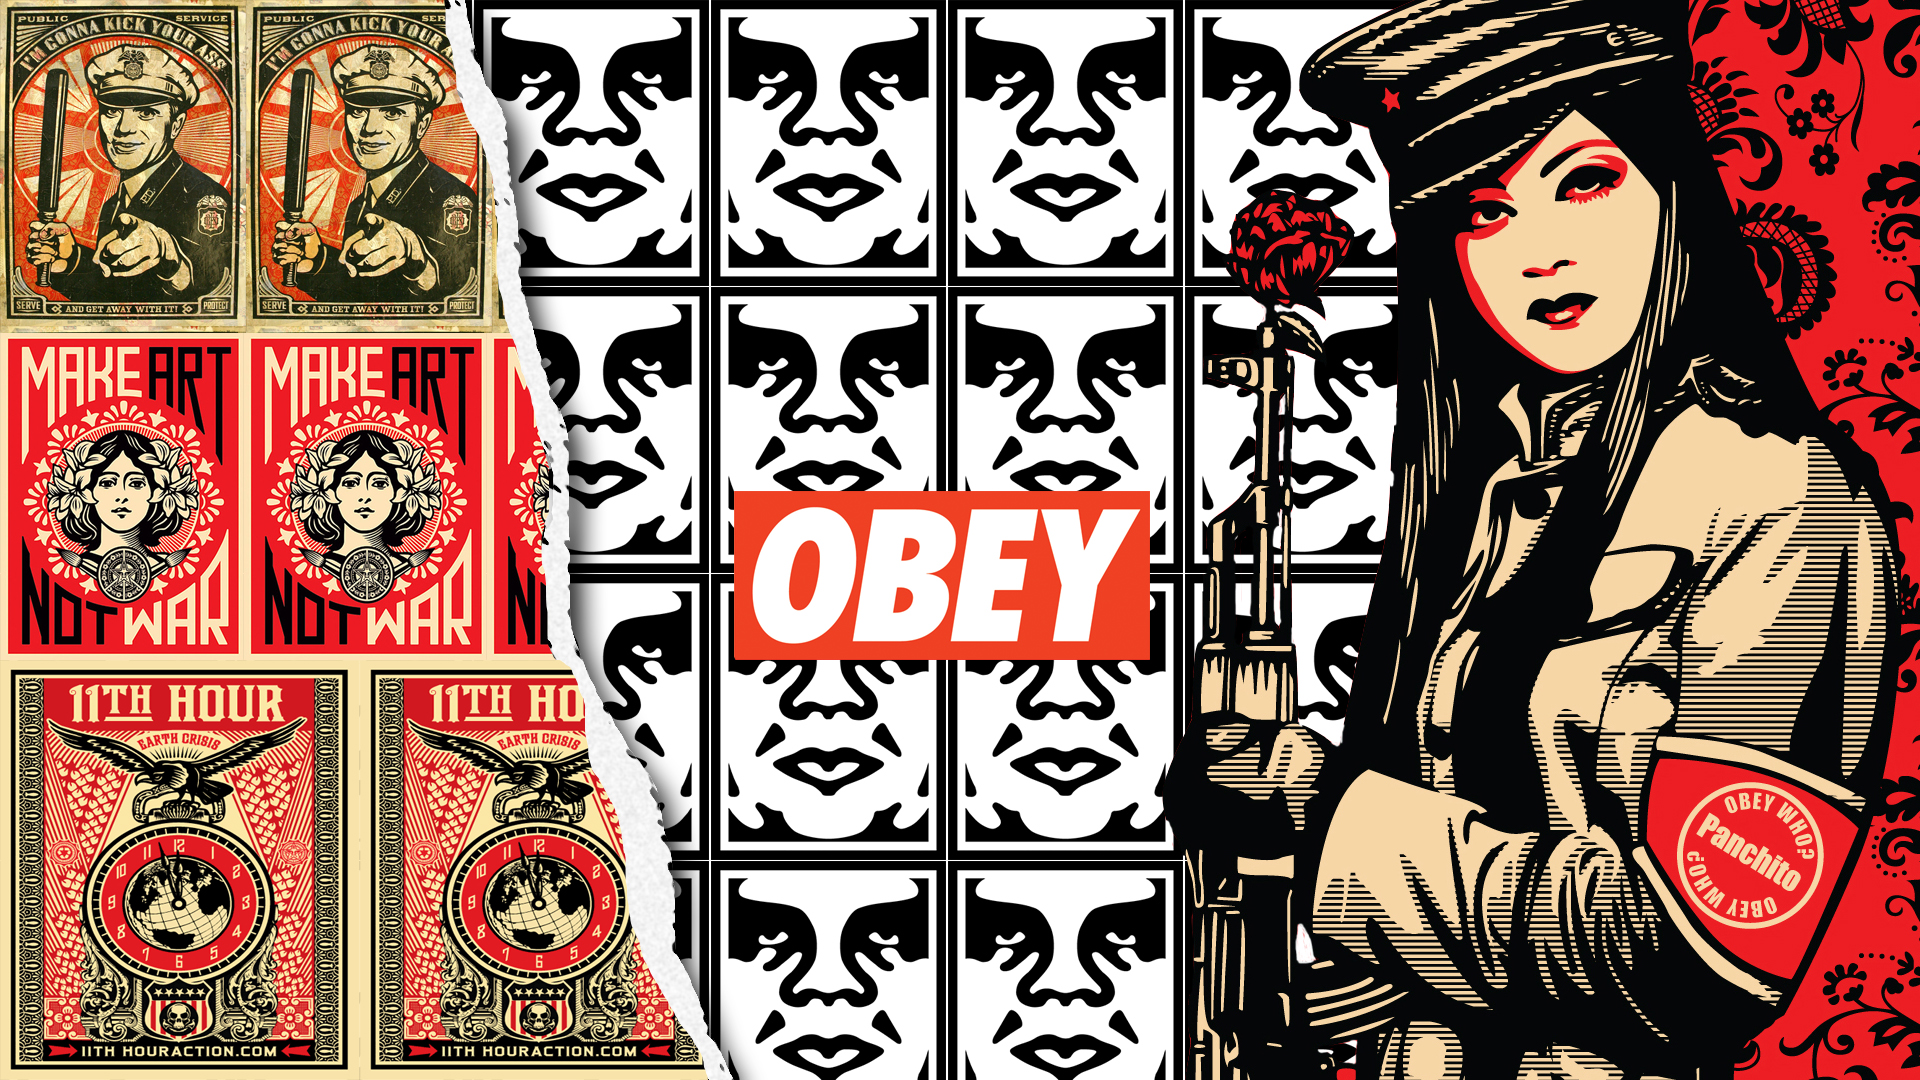 Obey Giant Wallpaper Hd 1920x1080